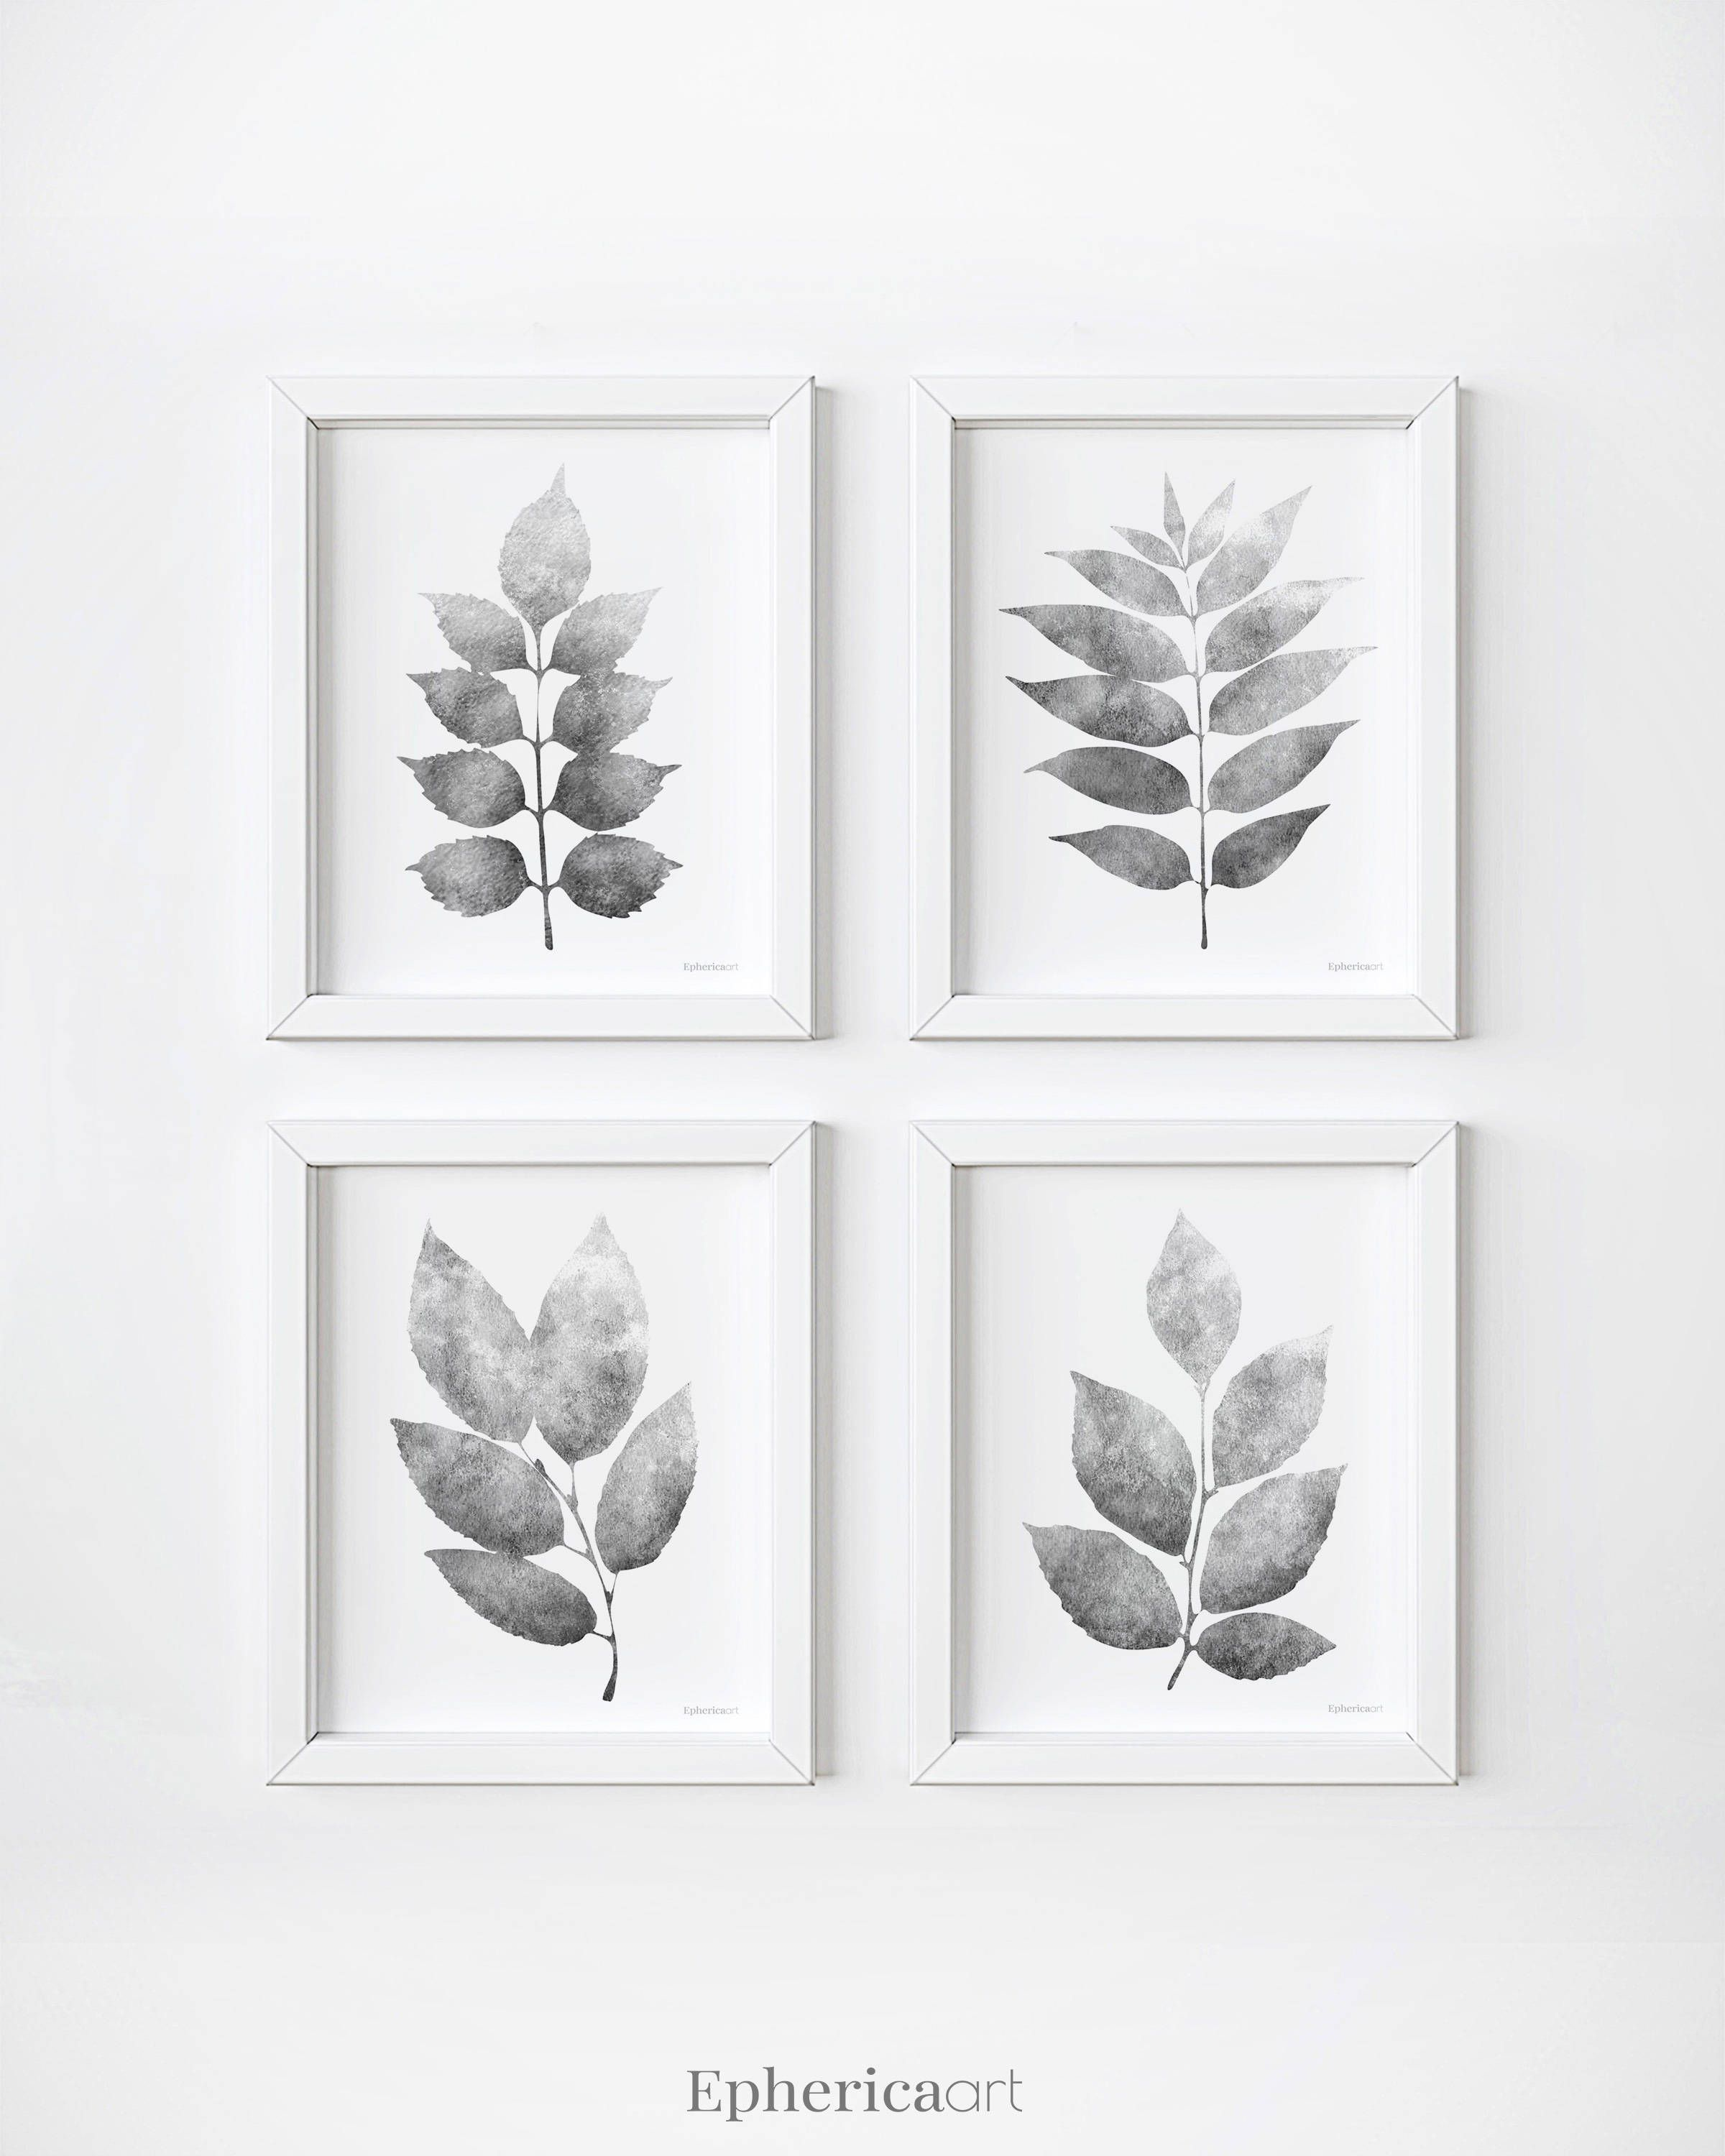 Set of 4 wall prints grey leaves gallery wall printable botanical print set black and white plants prints 4 piece wall decor set 5x7 8x10 by ephericaart